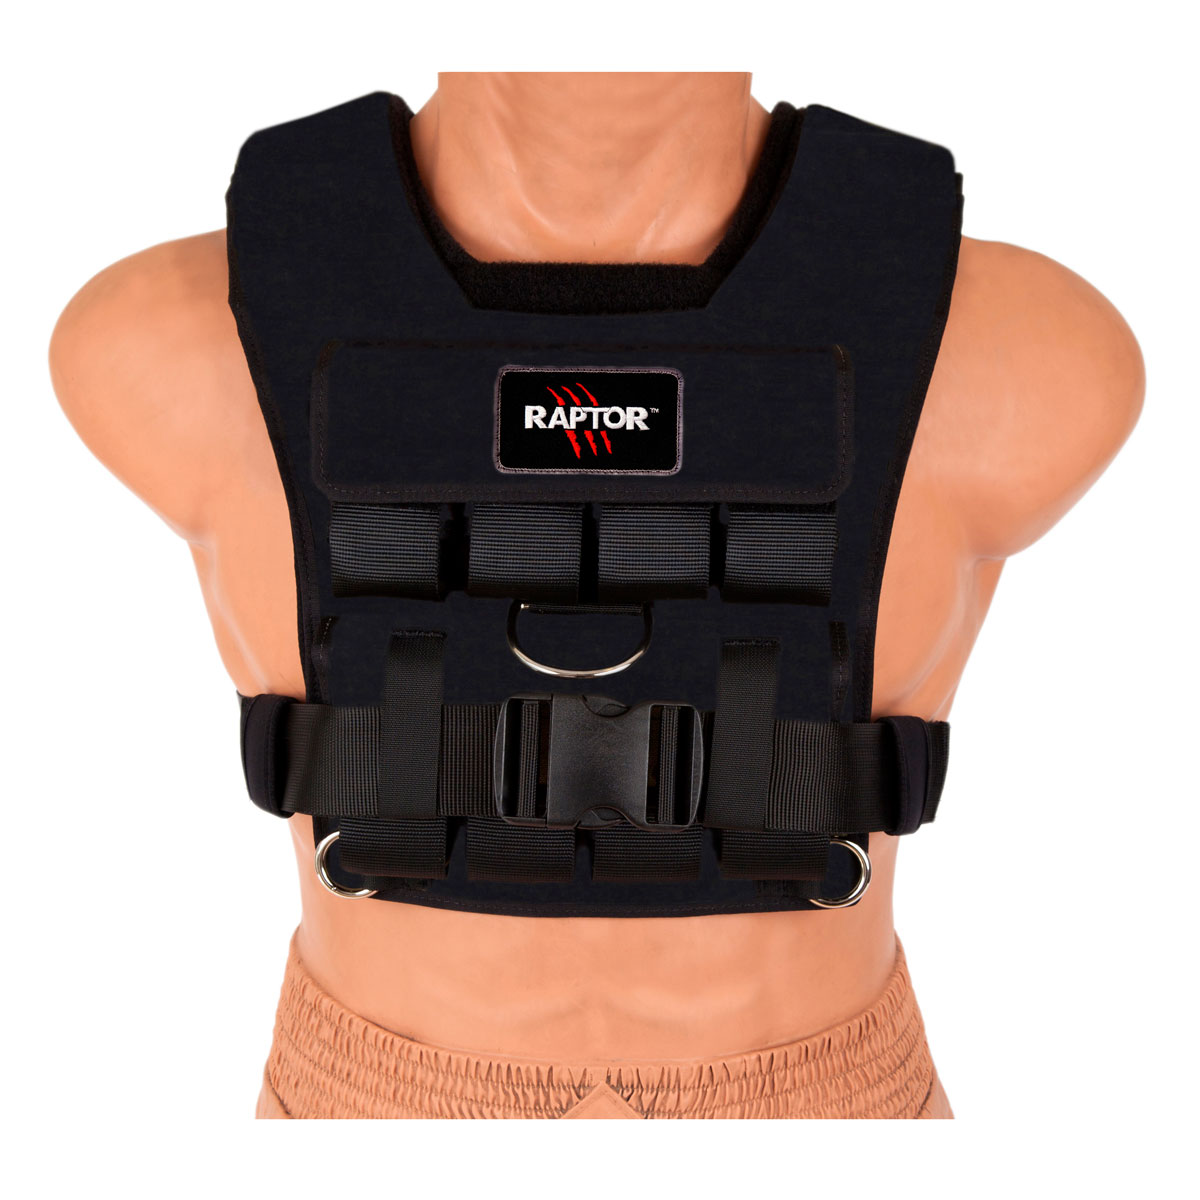 Raptor Tactical Weight Vest - 20KG